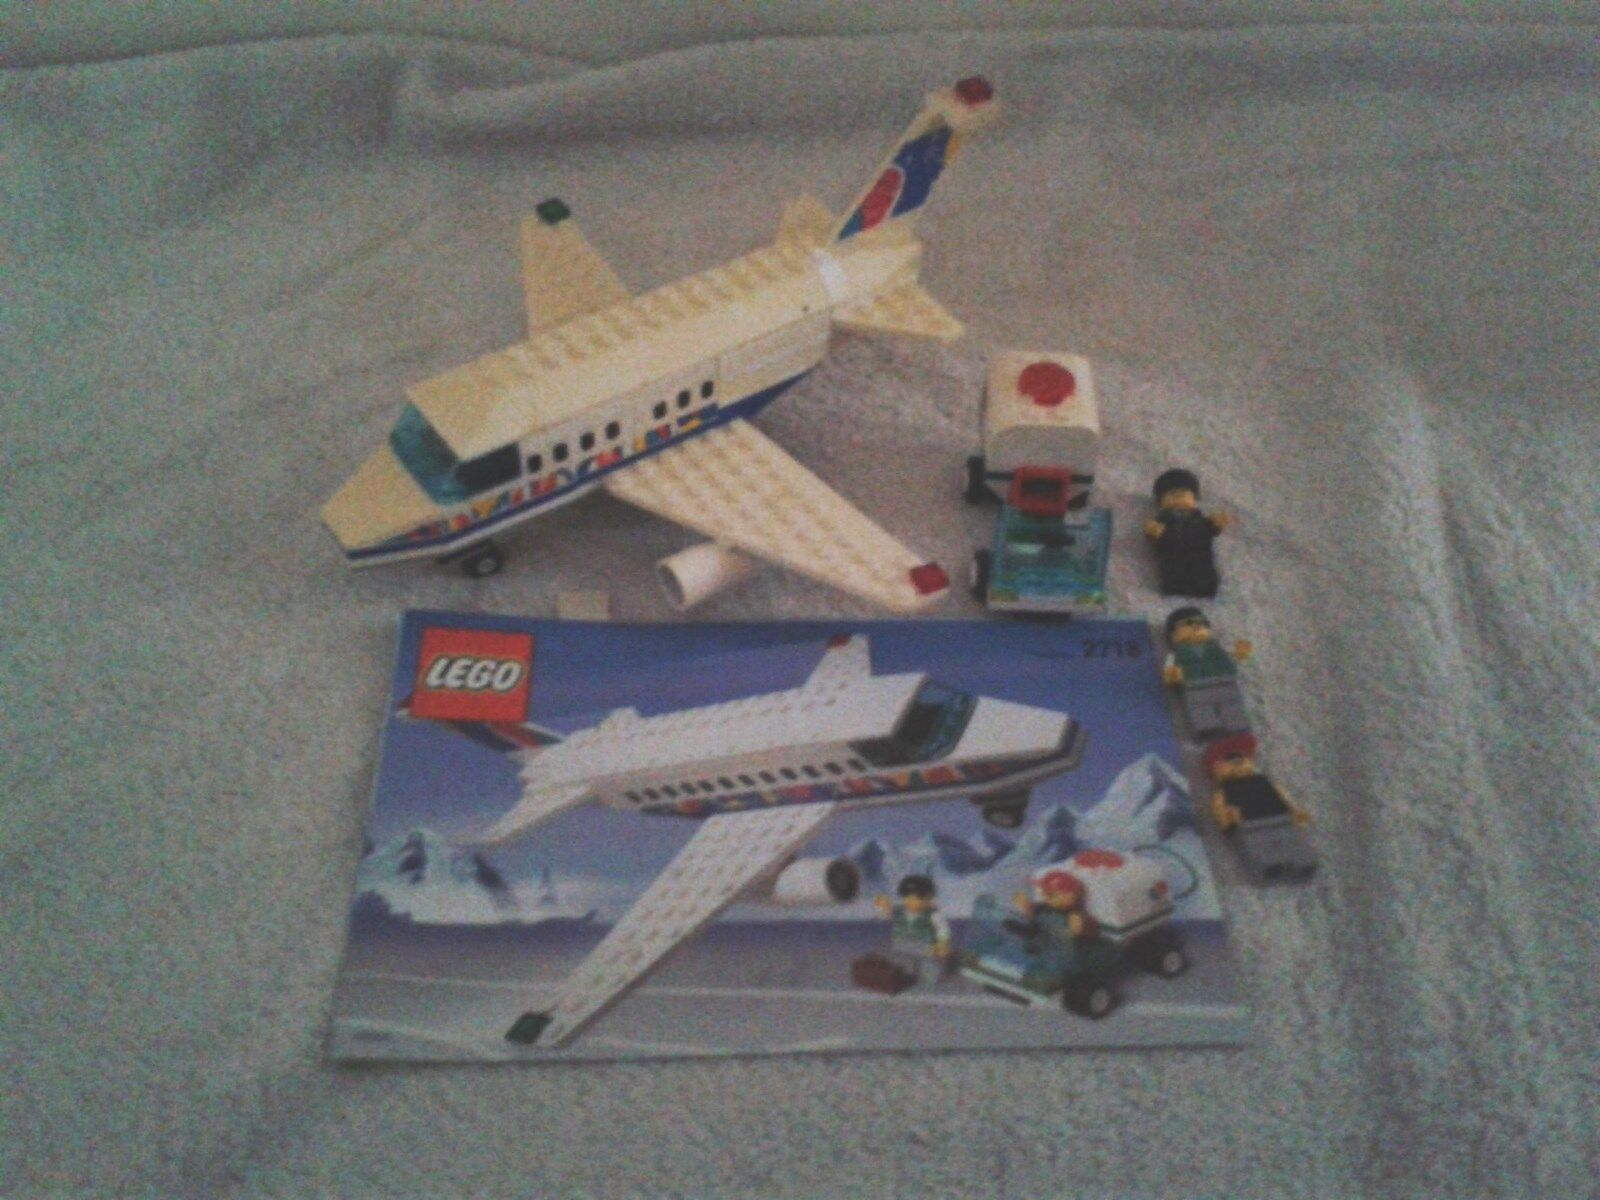 Lego Lego Lego 2718 rare set Passenger Aircraft and ground crew 4cc9f0